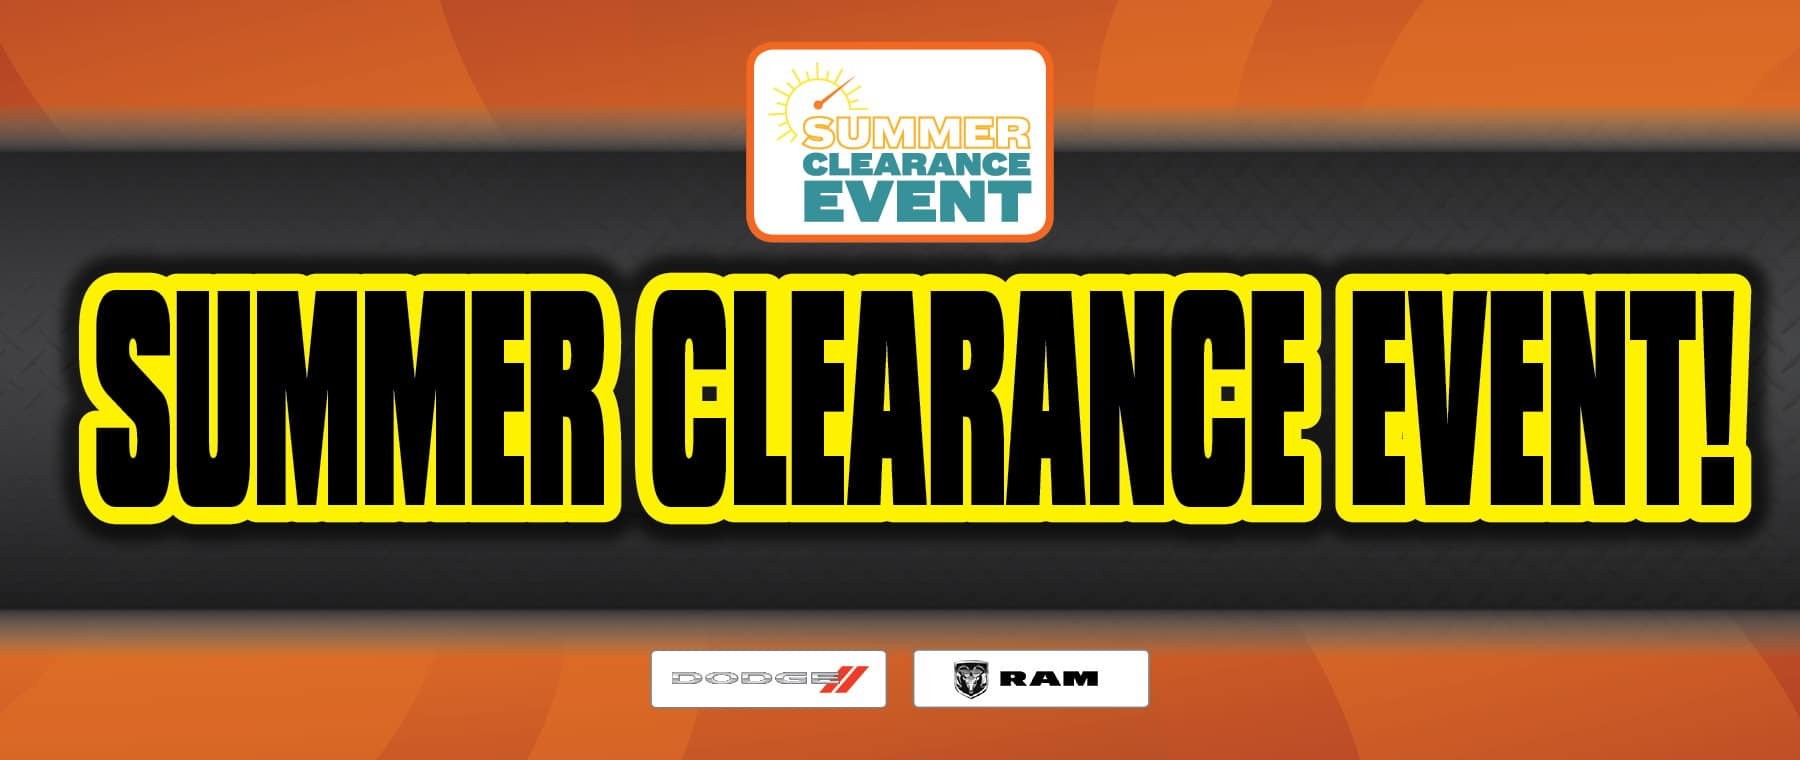 Summer Clearance Event Is Happening Now At University Dodge RAM!